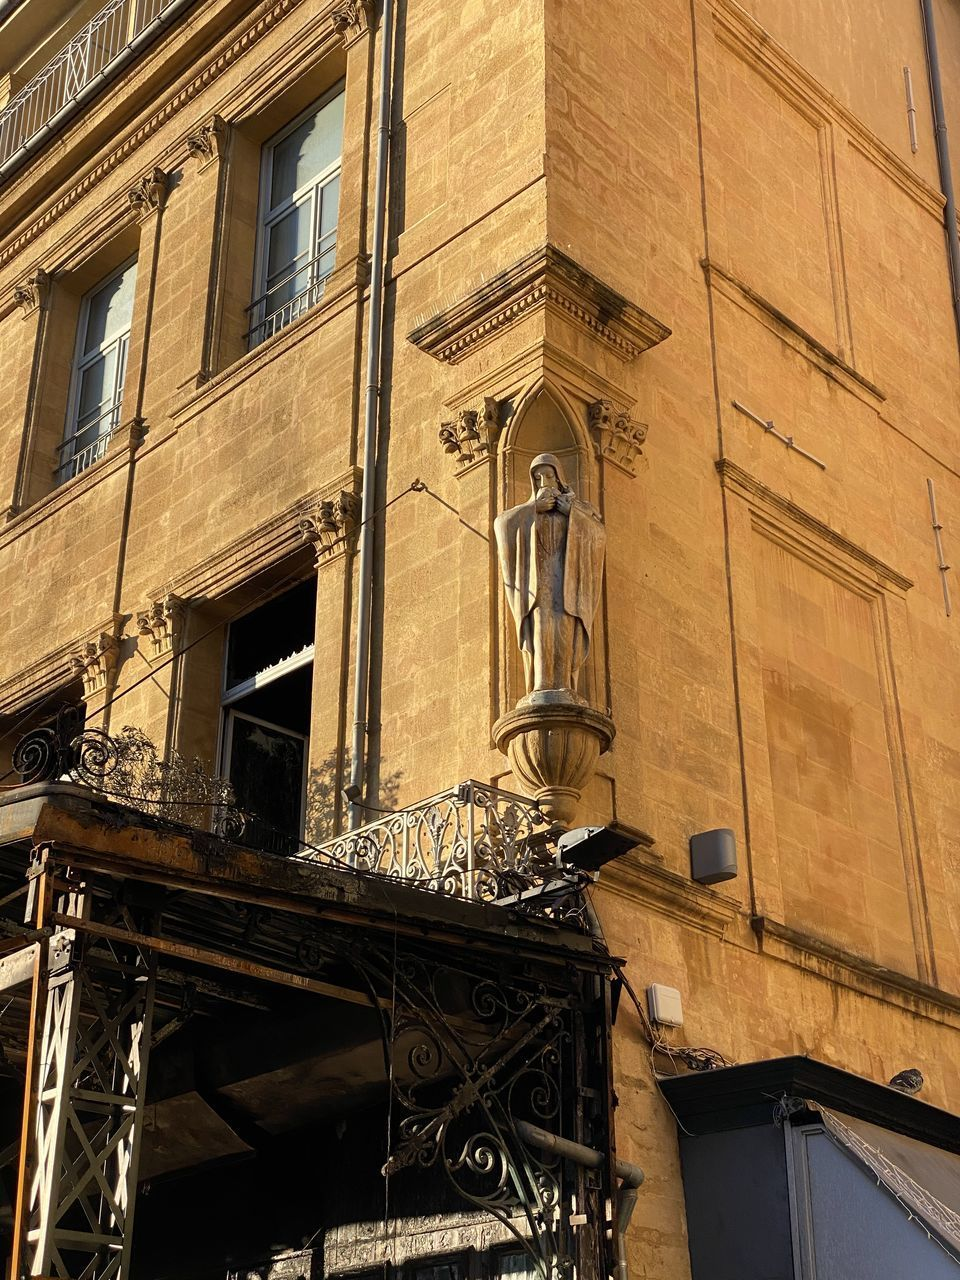 architecture, building exterior, built structure, building, window, low angle view, no people, day, city, residential district, the past, outdoors, history, balcony, old, wall - building feature, construction industry, sunlight, nature, abandoned, apartment